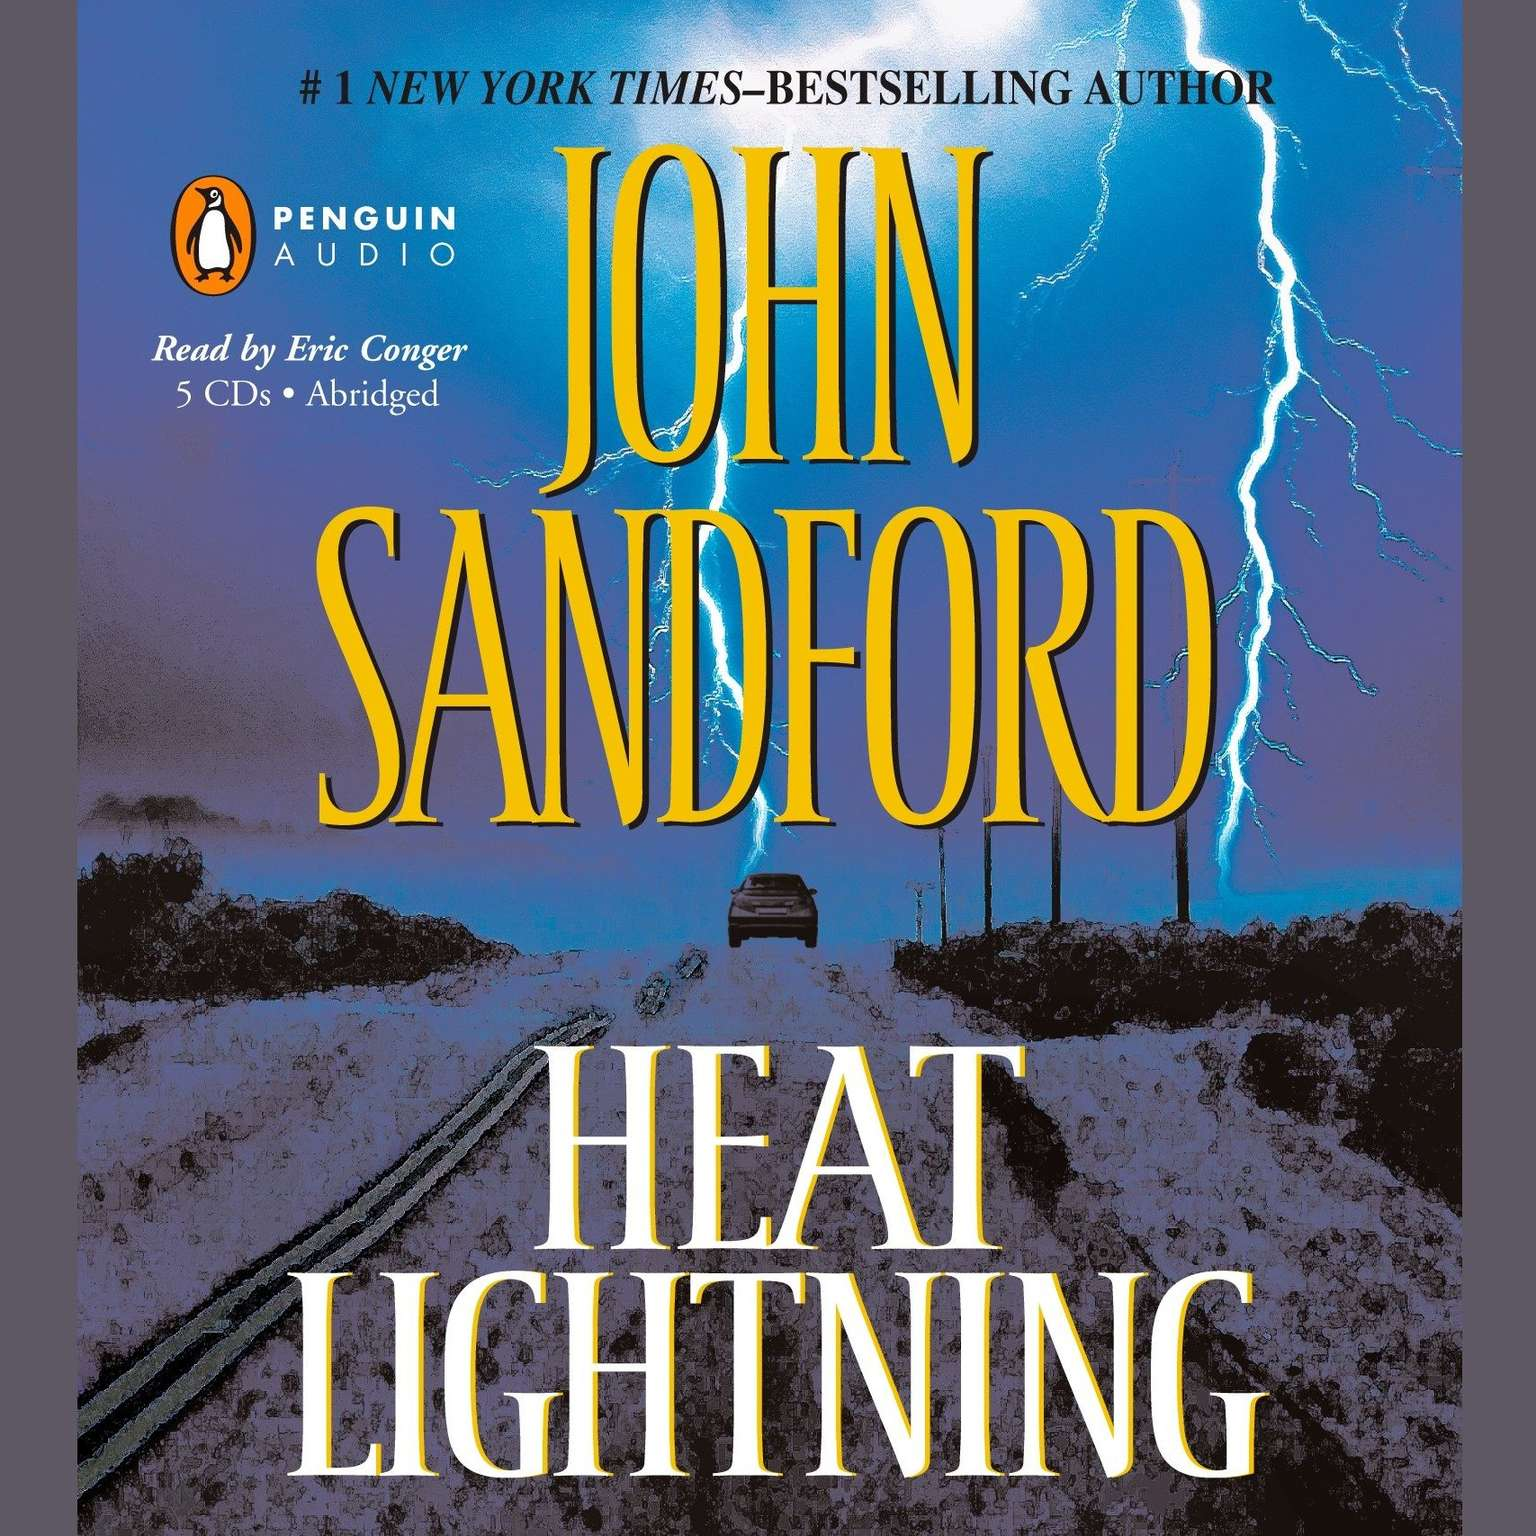 Download Heat Lightning abridged Audiobook by John Sandford for just $5 95